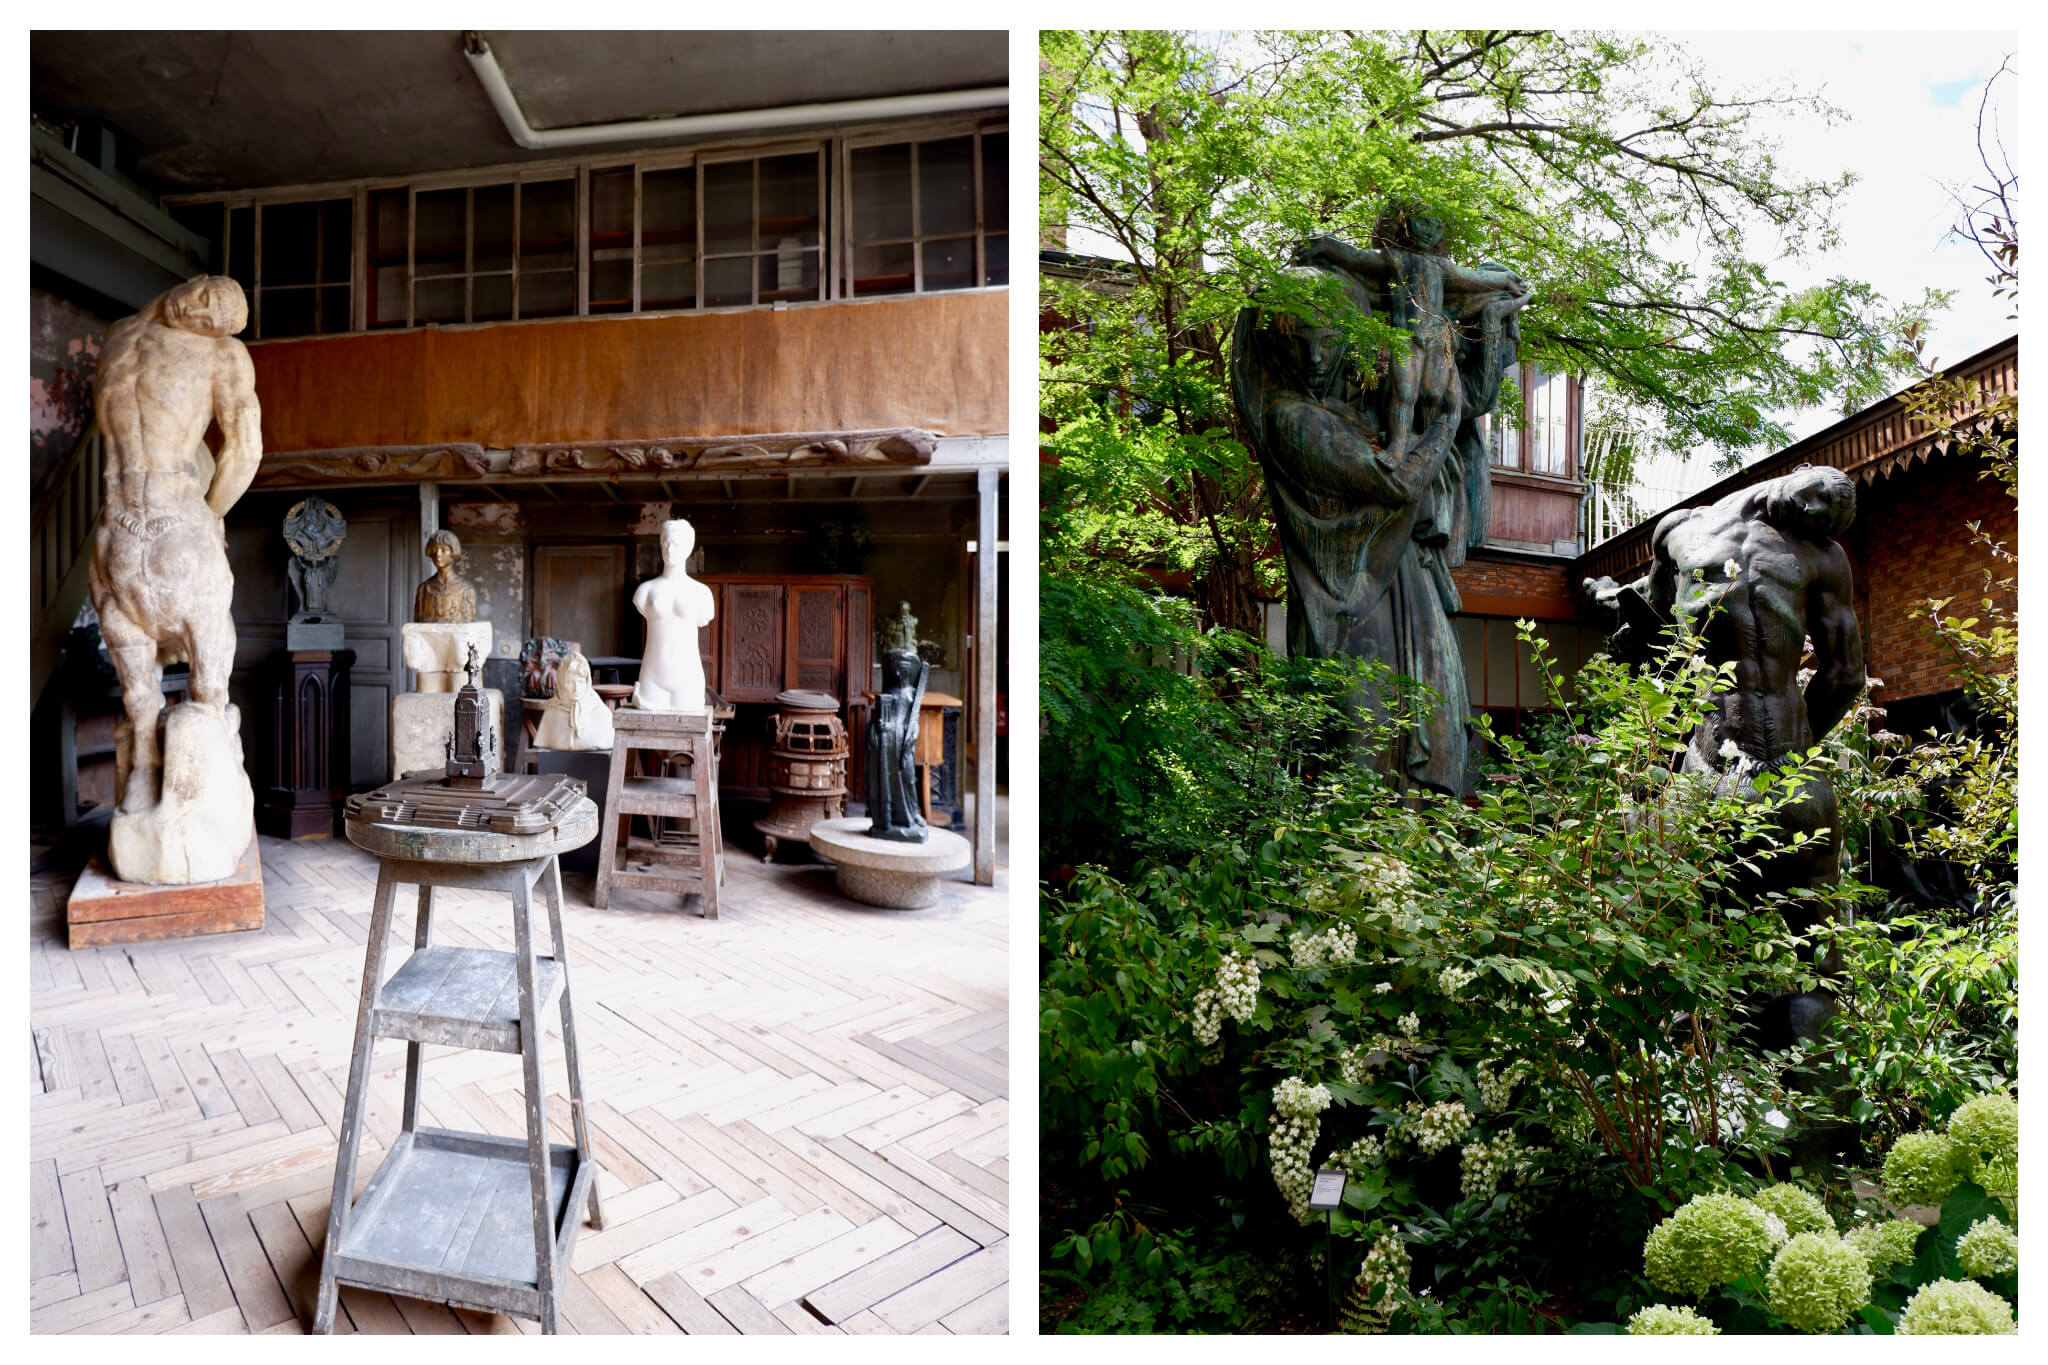 Left, the sculptures inside the Musée Bourdelle, a museum dedicated to the work of French sculptor Antoine Bourdelle. Right, the leafy gardens and sculptures of the Musée Bourdelle.